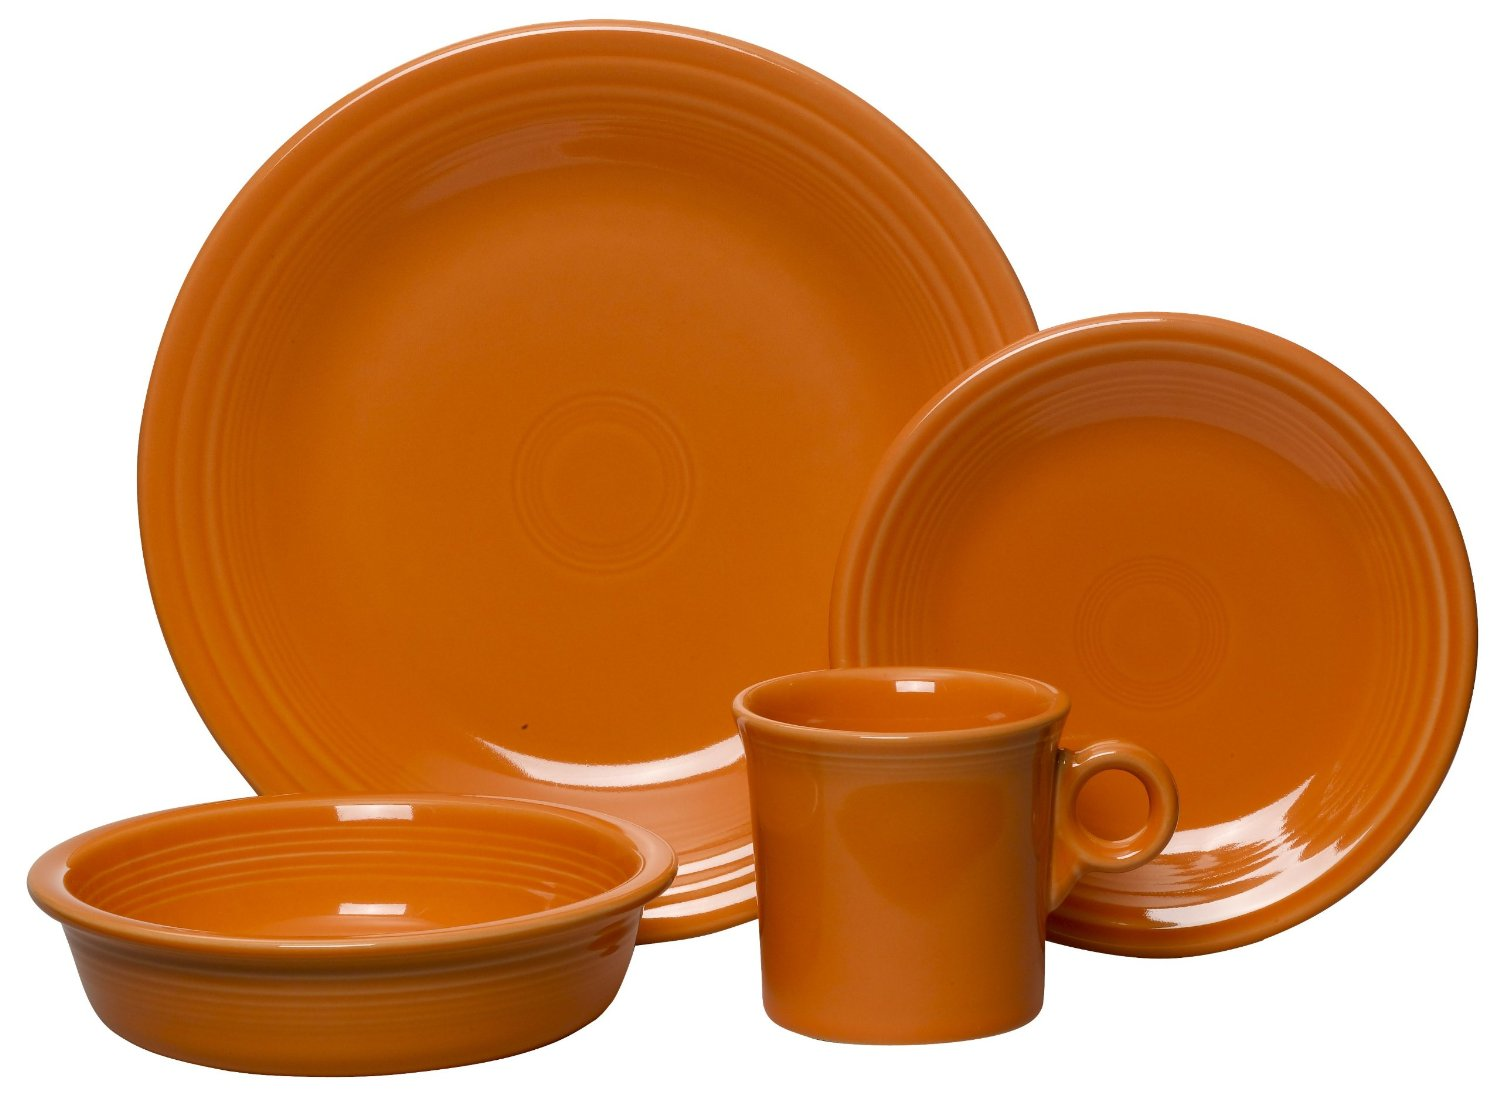 Chic Fiestaware 4 Piece Dinnerware Place Setting In Orange For Dinnerware Ideas